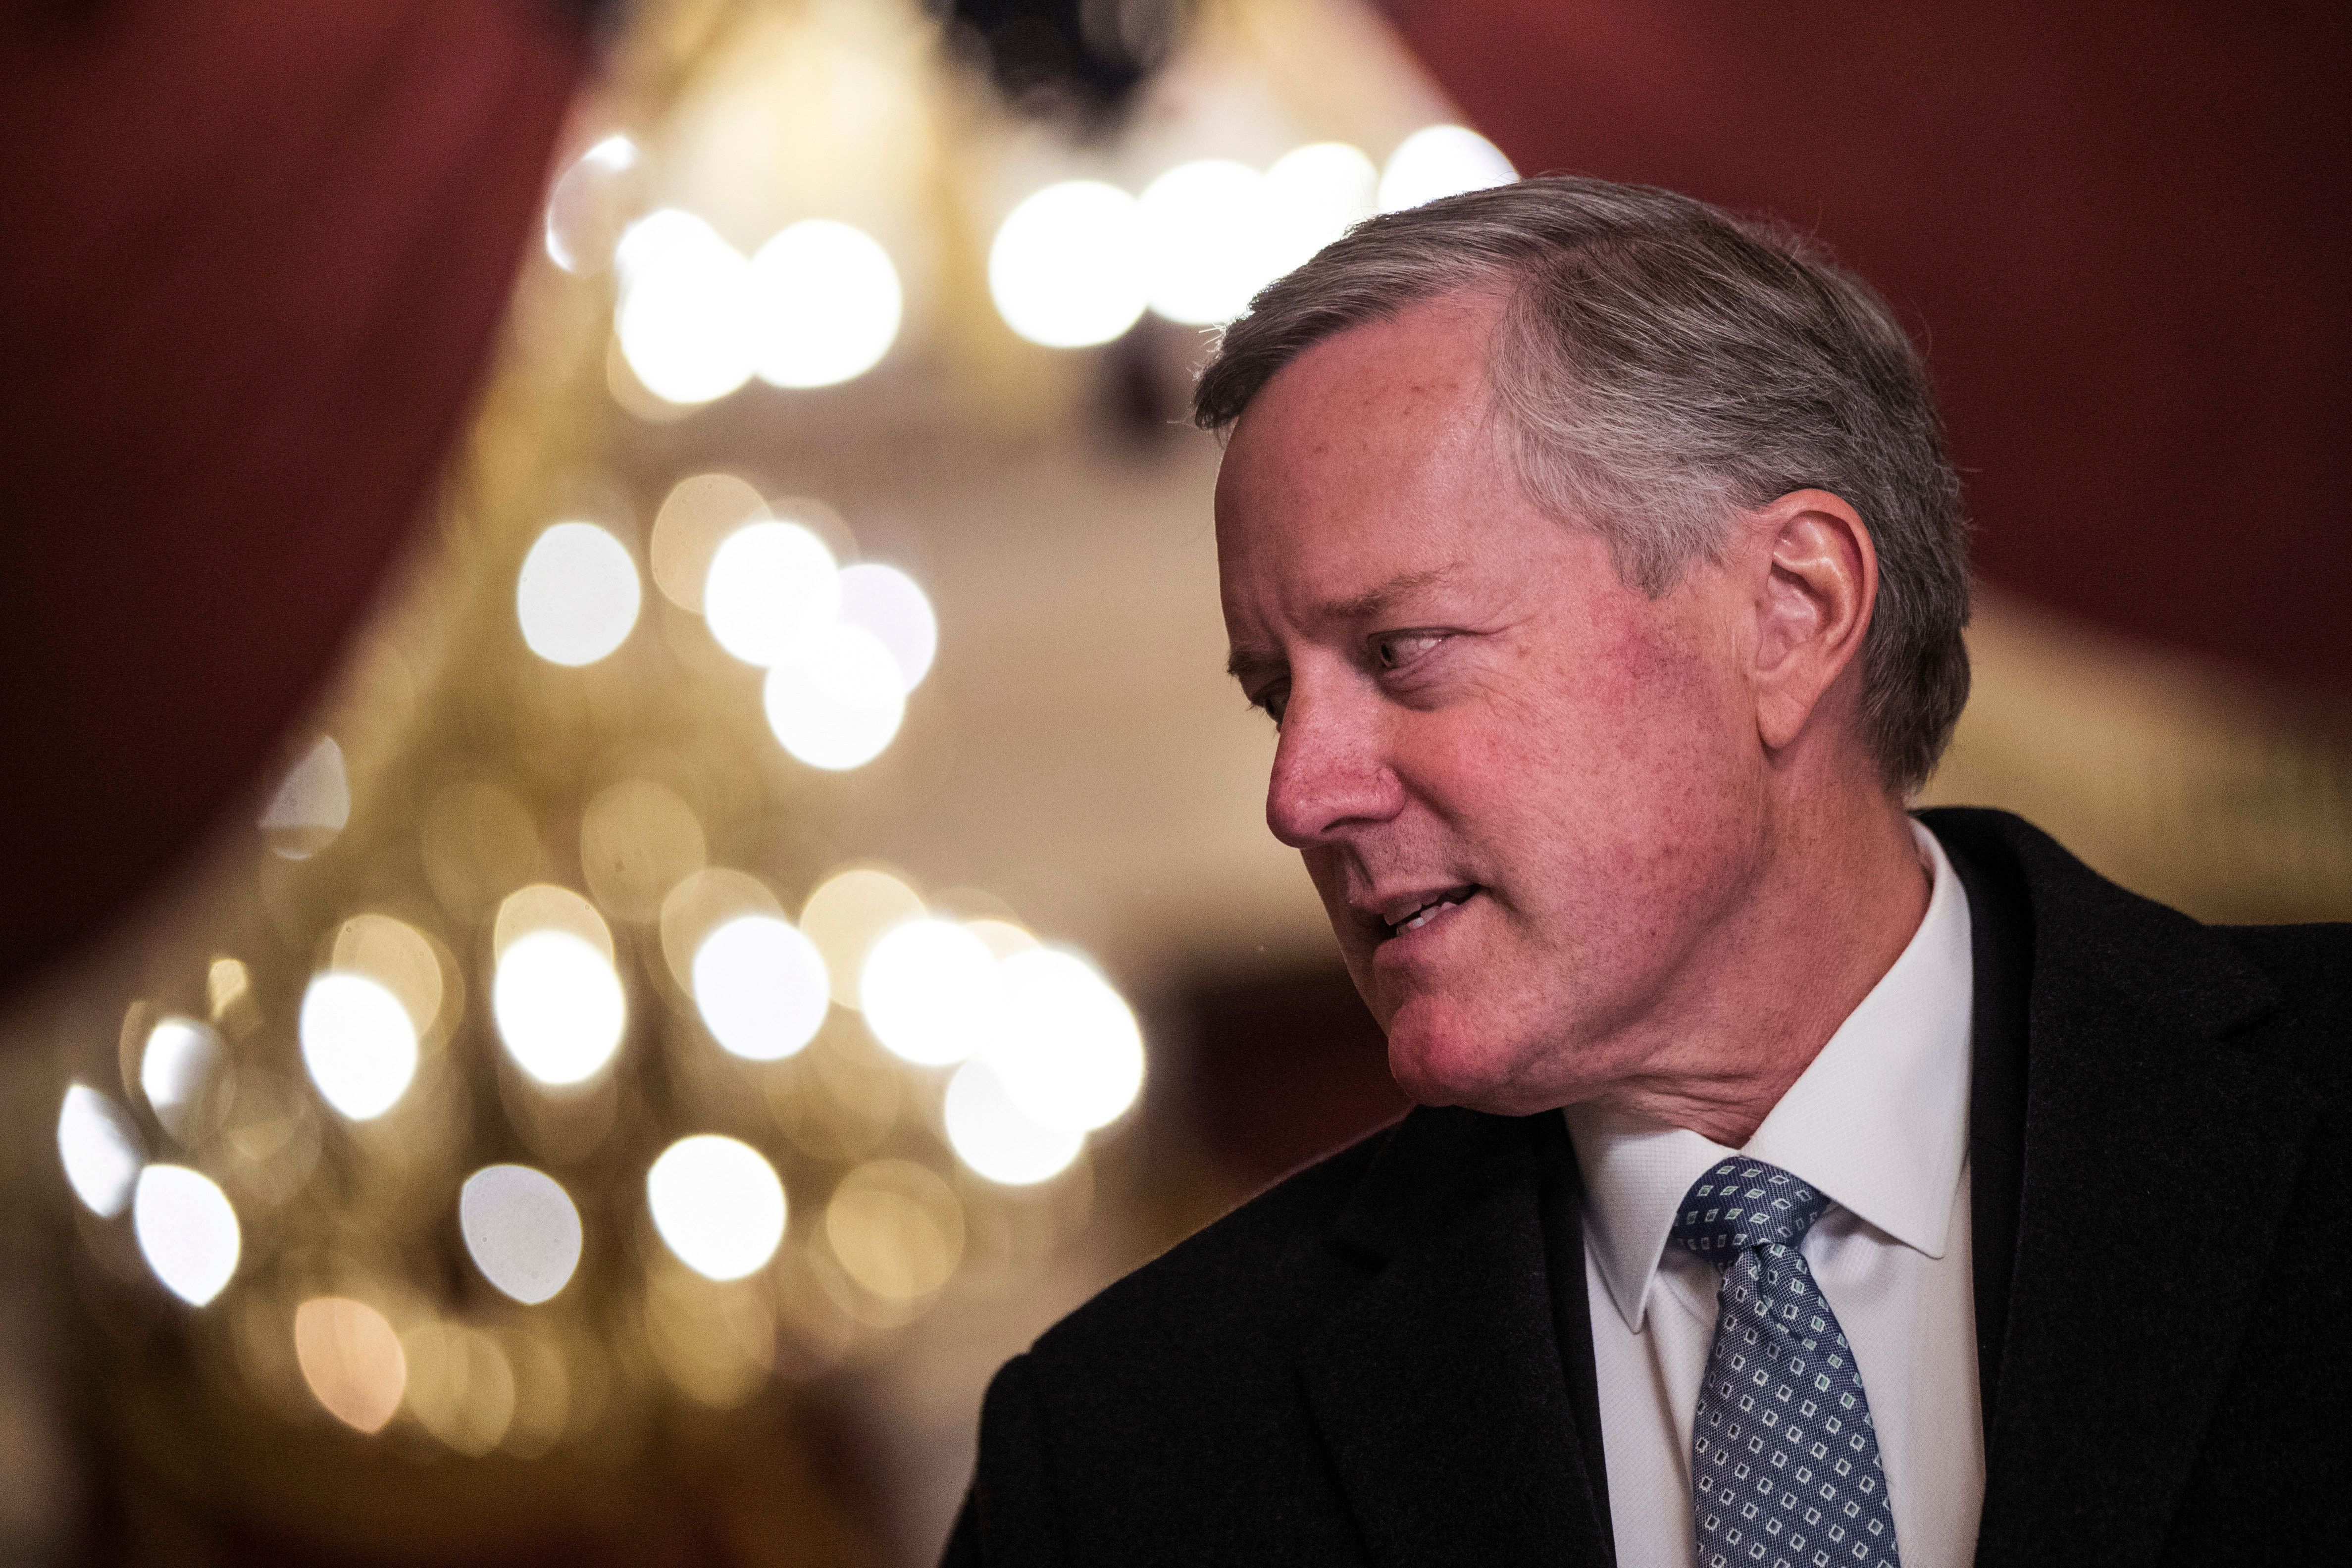 WASHINGTON, DC - DECEMBER 4: House Freedom Caucus chairman Rep. Mark Meadows (R-NC) speaks to reporters on Capitol Hill, December 4, 2017 in Washington, DC. The House voted to formally send their tax reform bill to a joint conference committee with the Senate, where they will try to merge the two bills. (Drew Angerer/Getty Images)